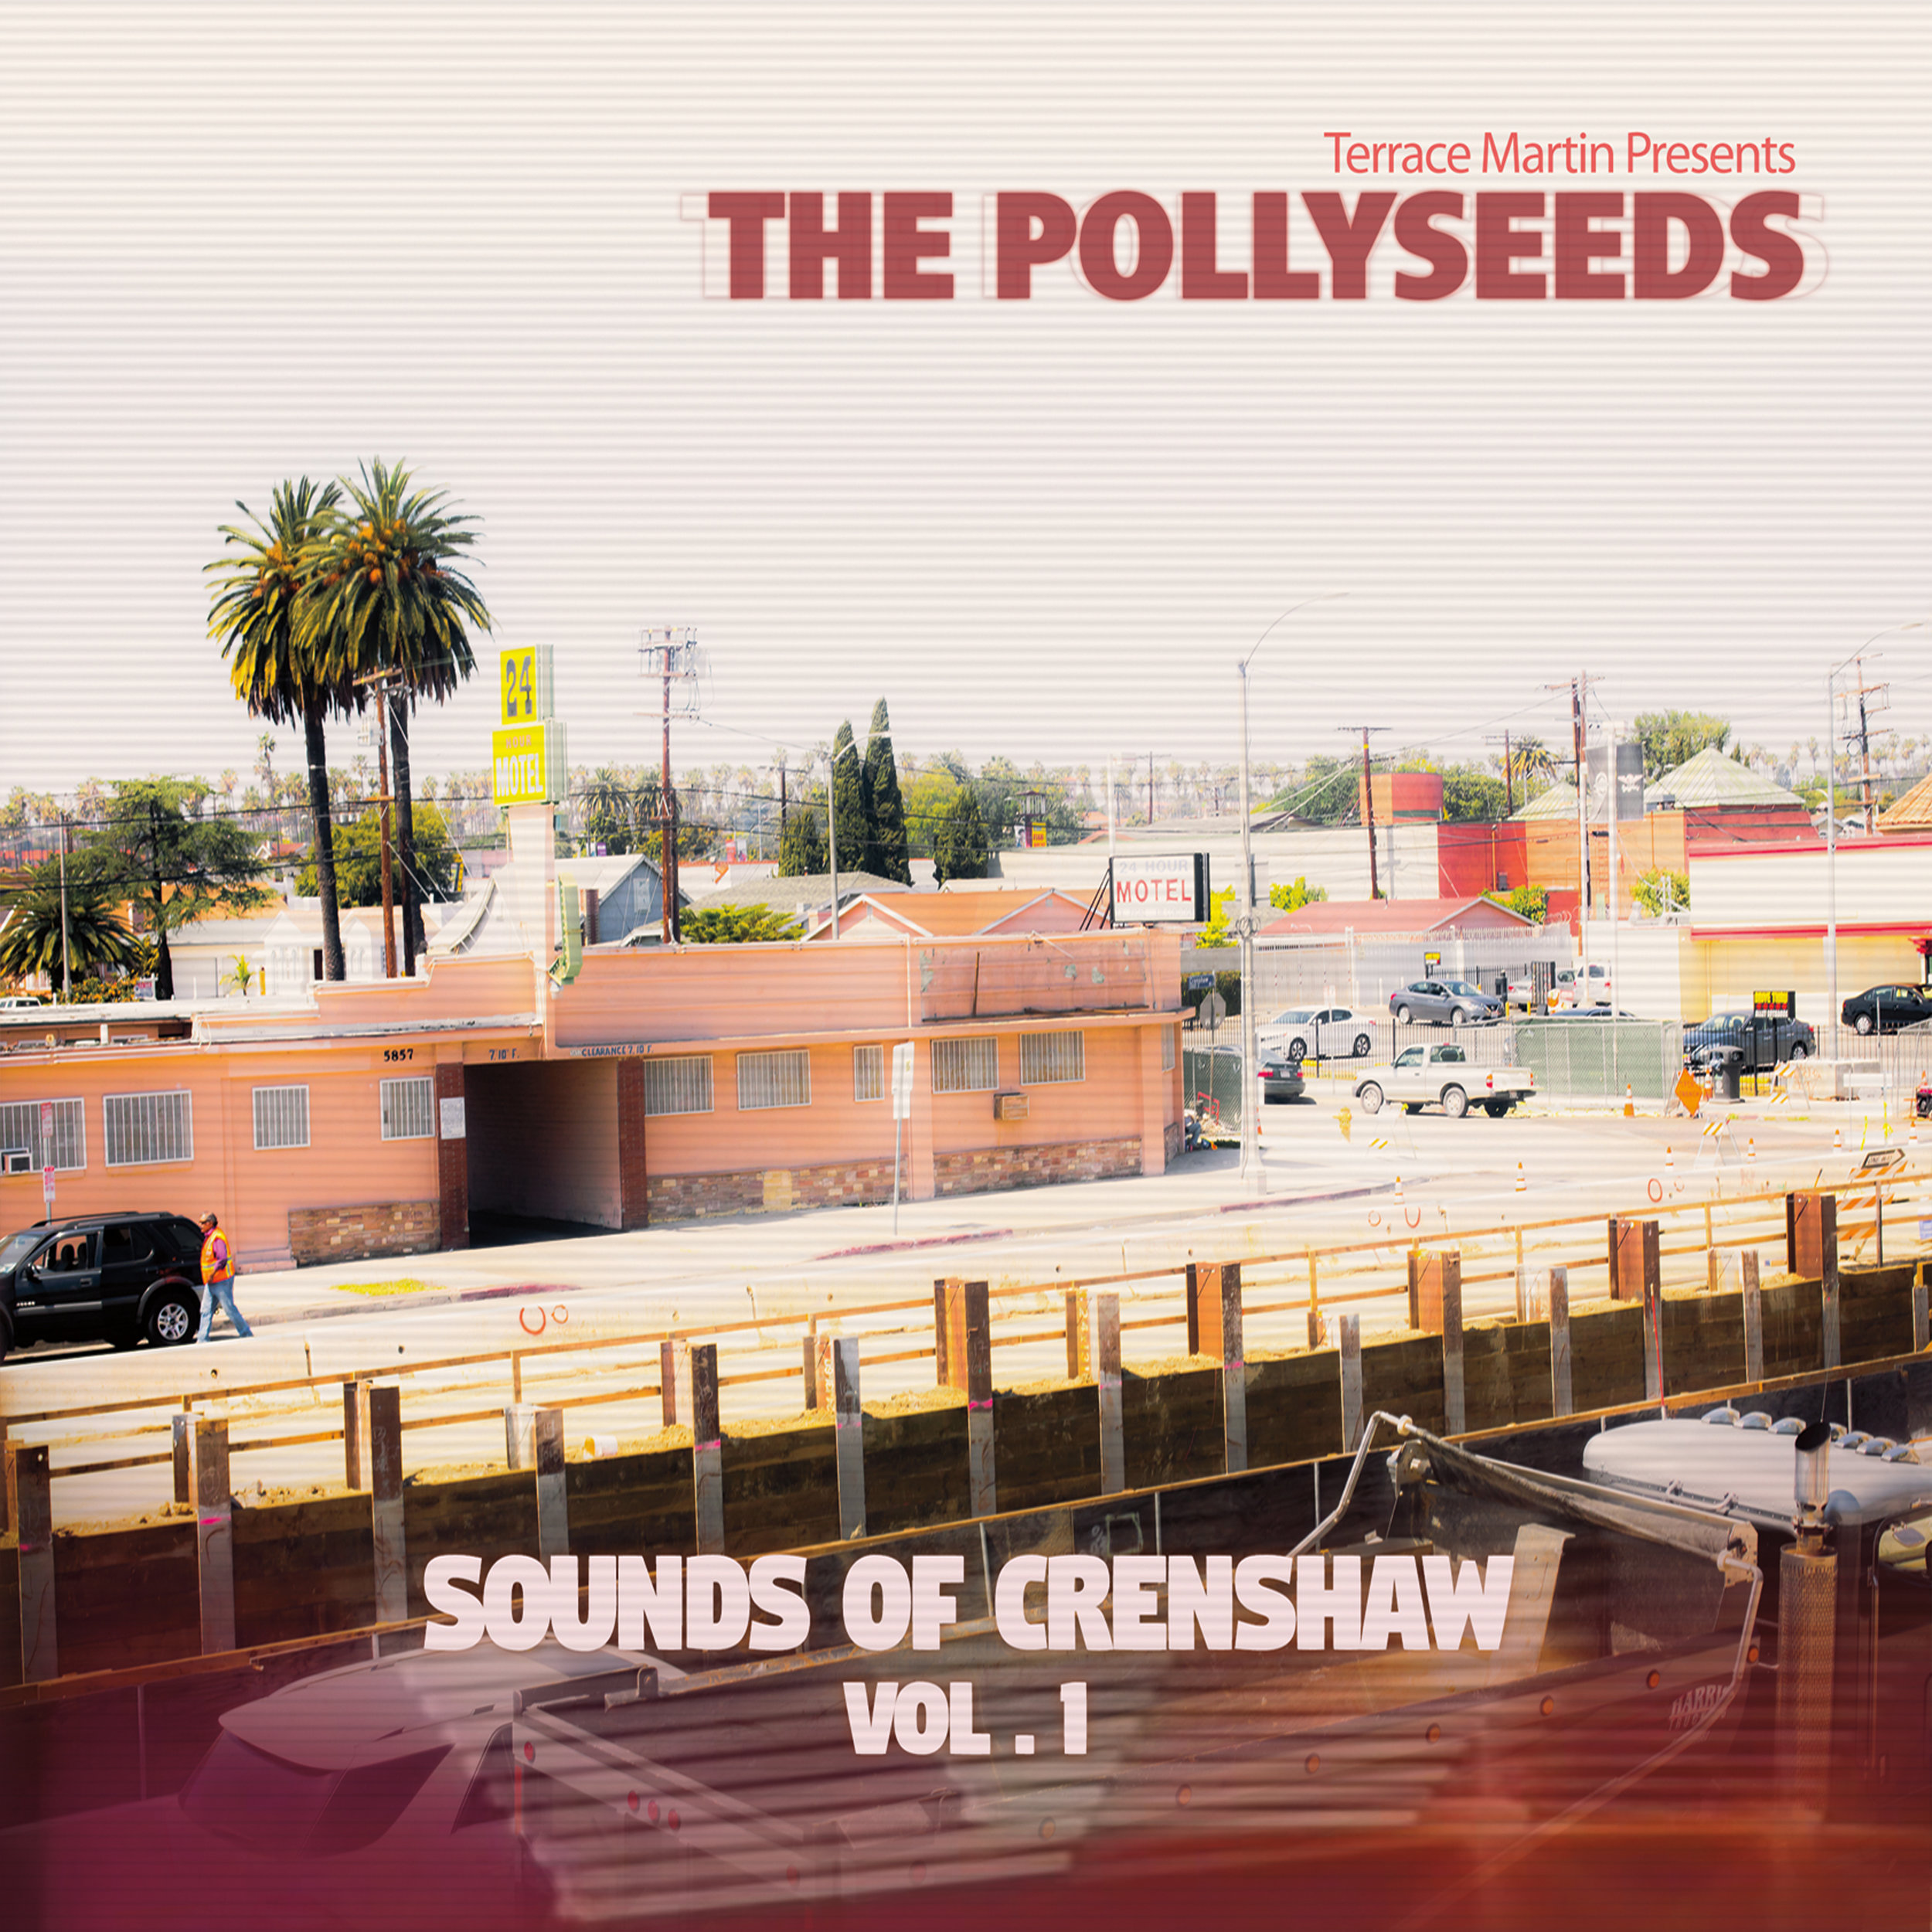 The Pollyseeds - Sounds of Crenshaw Vol 1